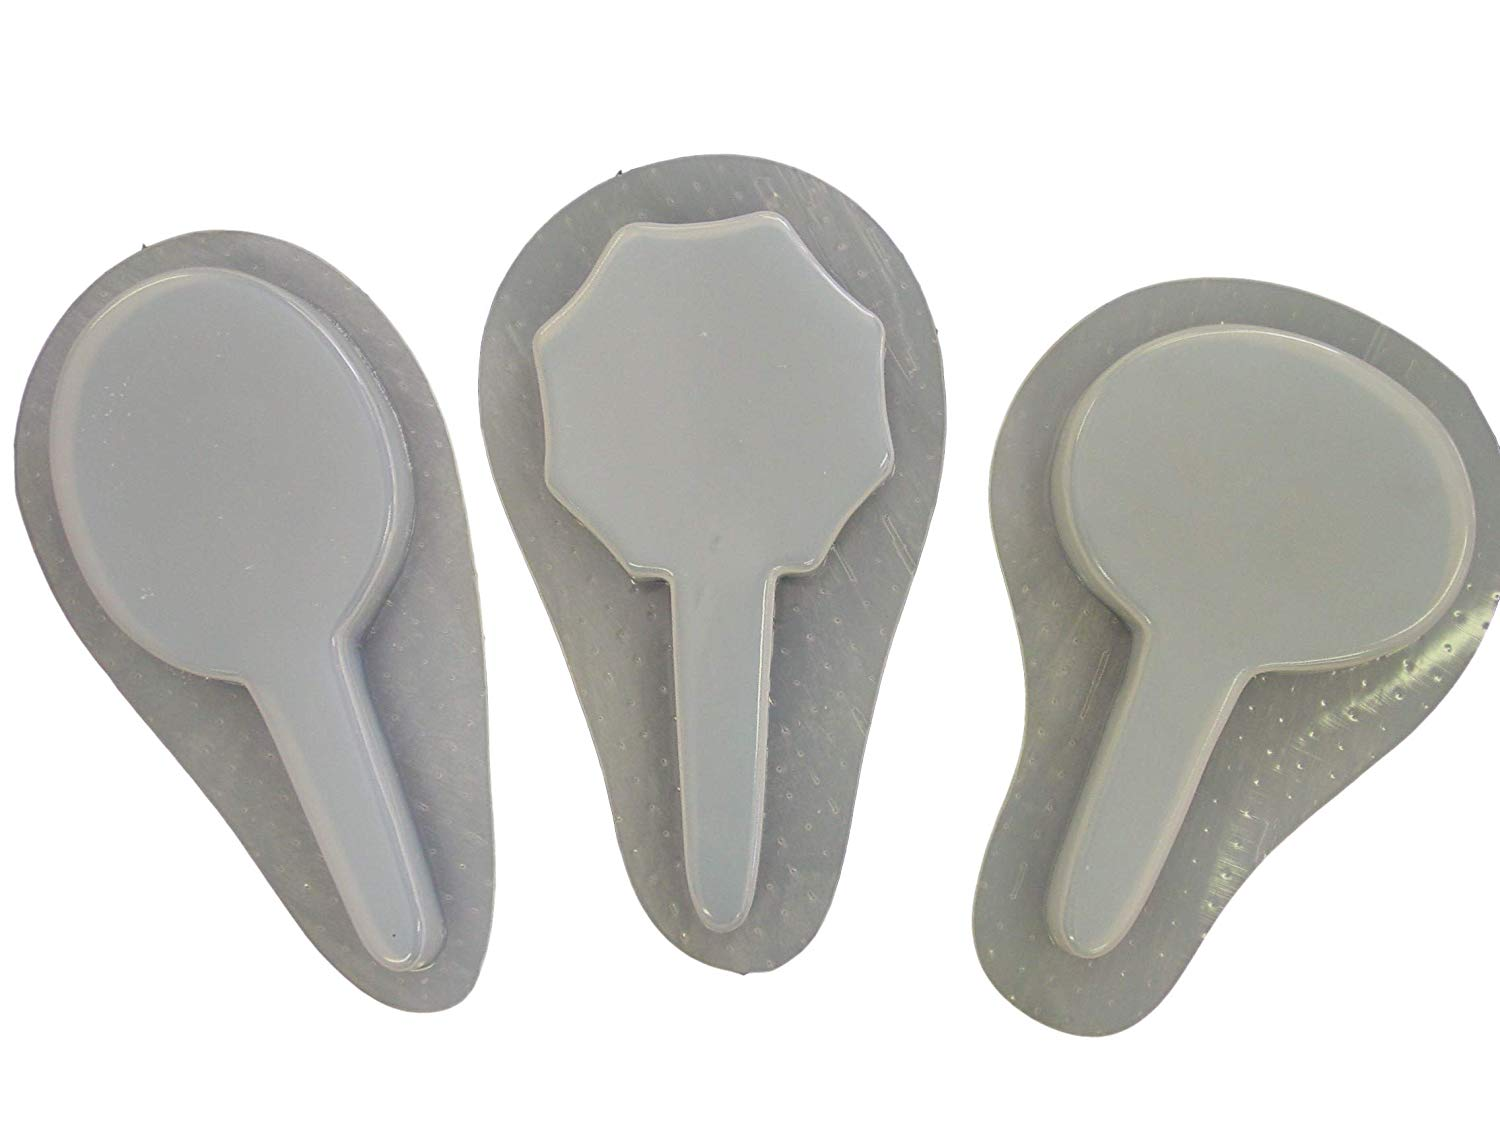 Plain Smooth Set of 3 Garden Stake Concrete Plaster Molds 4006